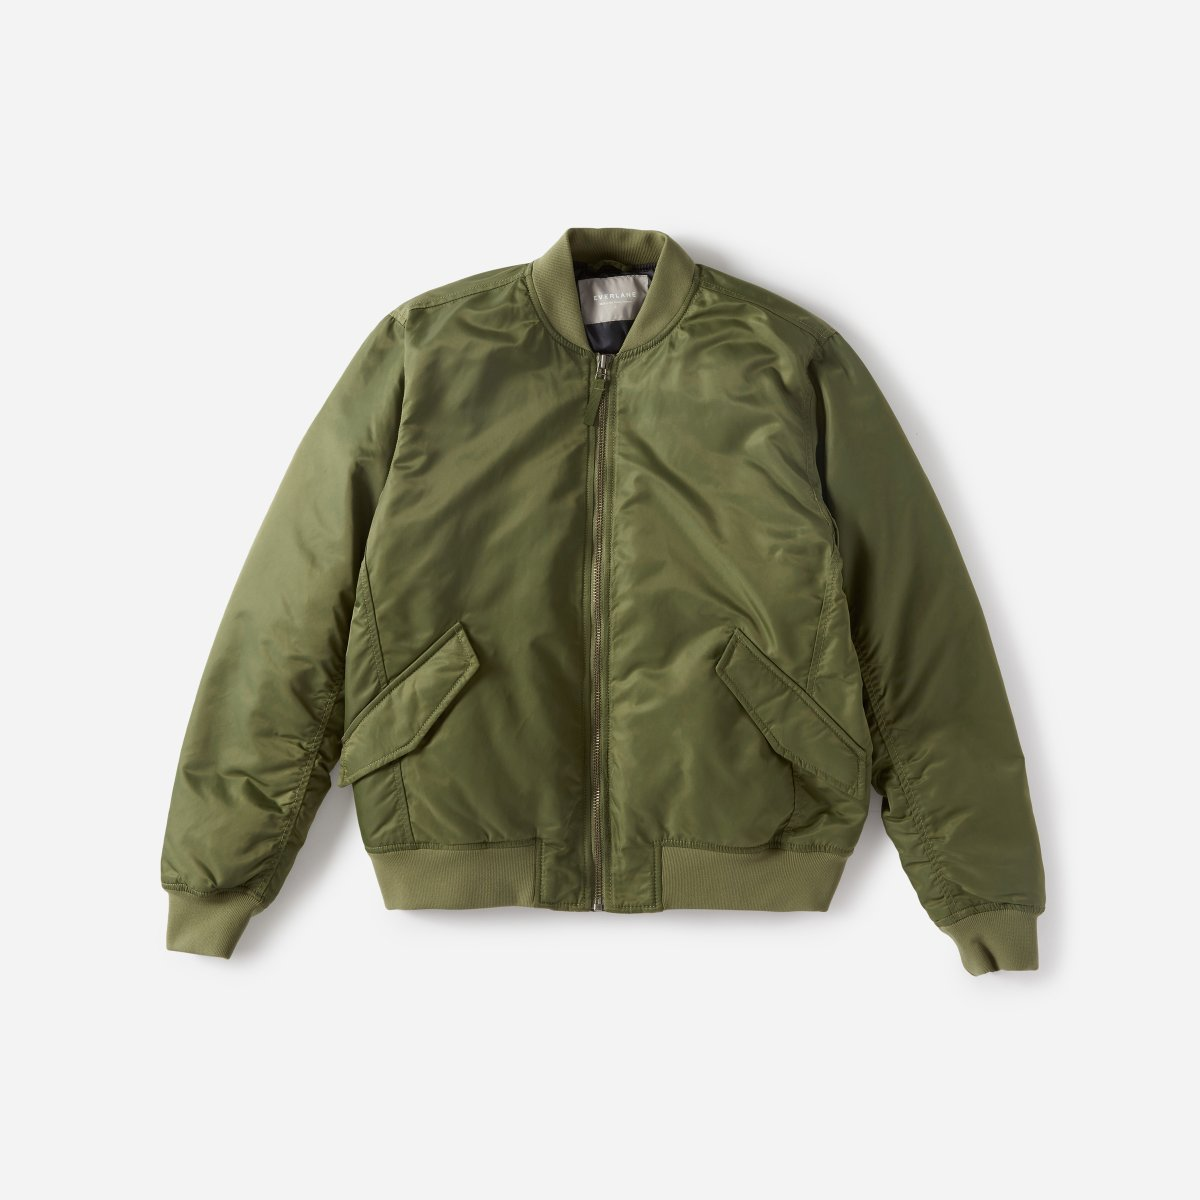 everlane army green bomber jacket